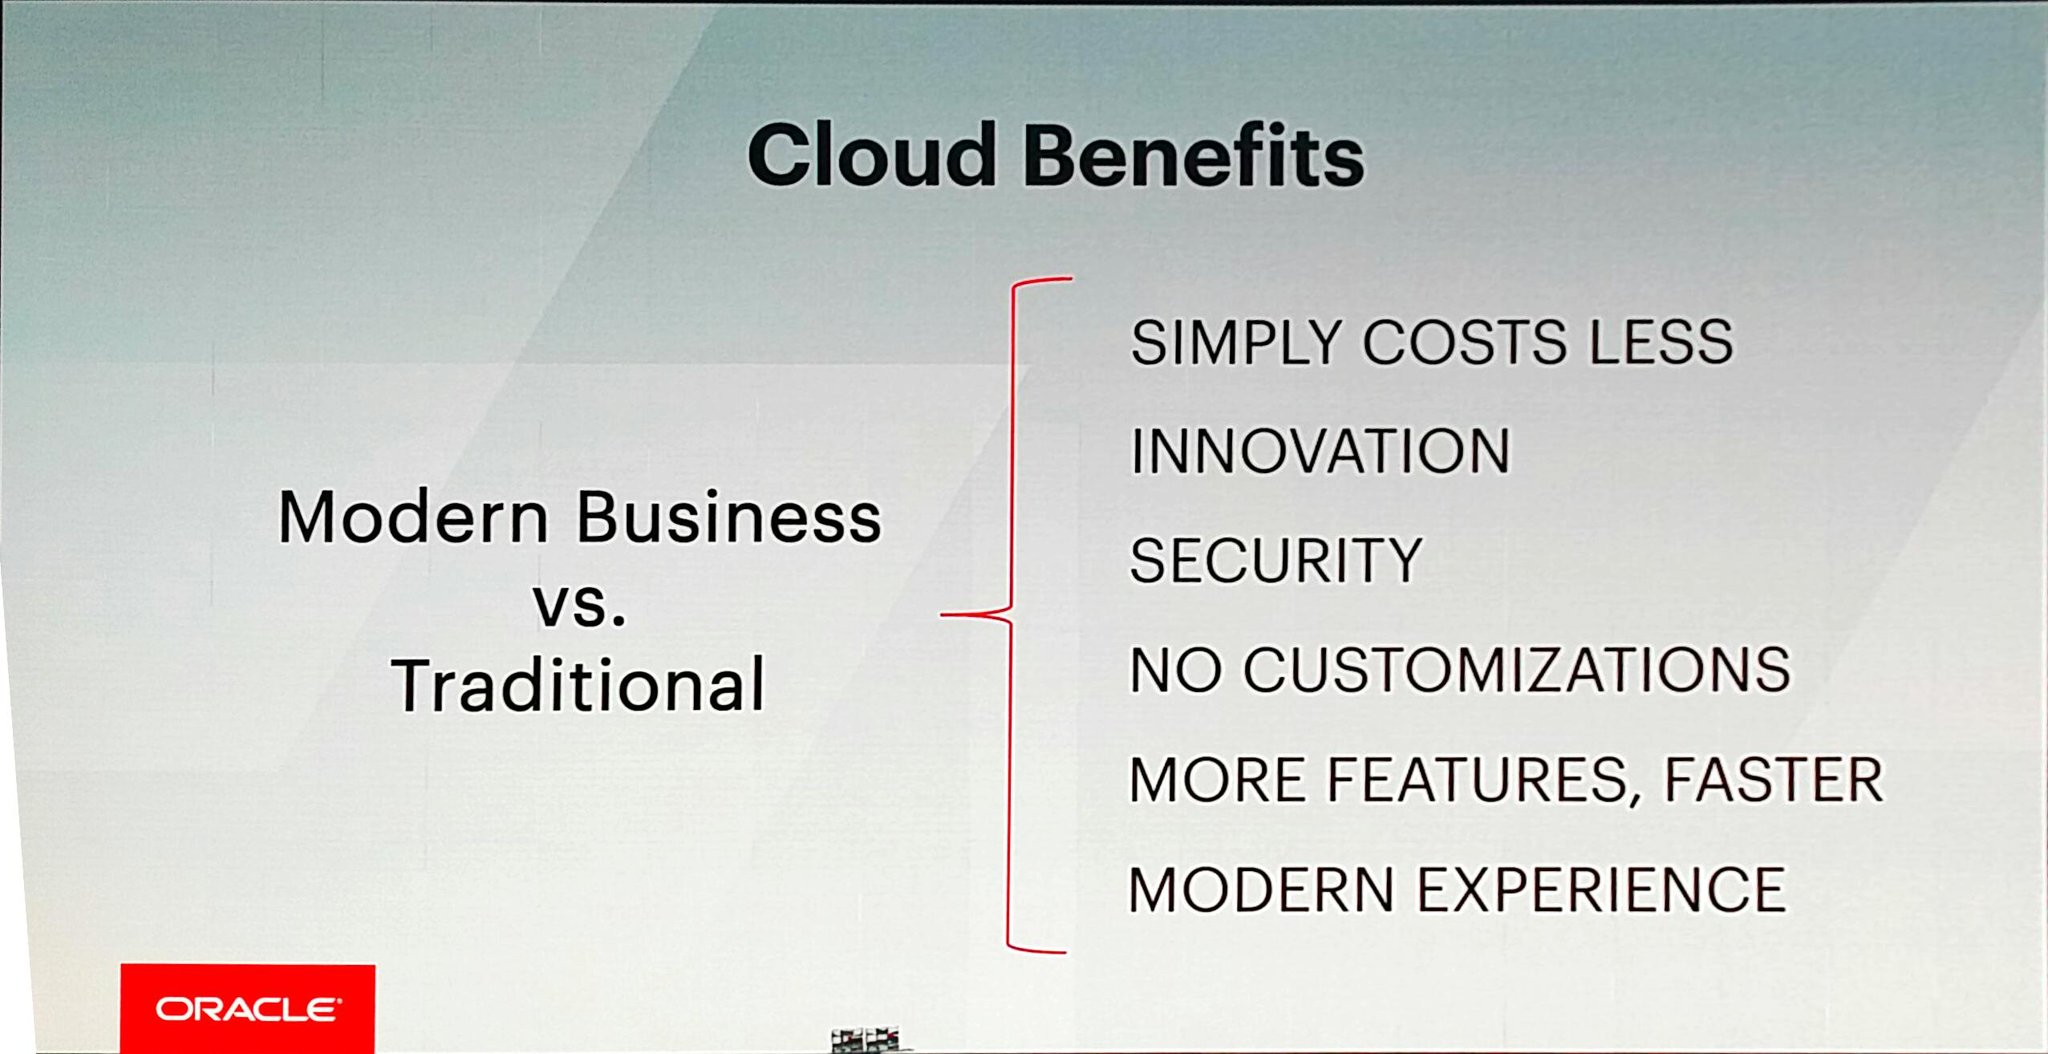 And @MarkVHurd goes over #cloud benefits -  all about lower #TCO. #SuiteWorld17 https://t.co/H814wPG2NT